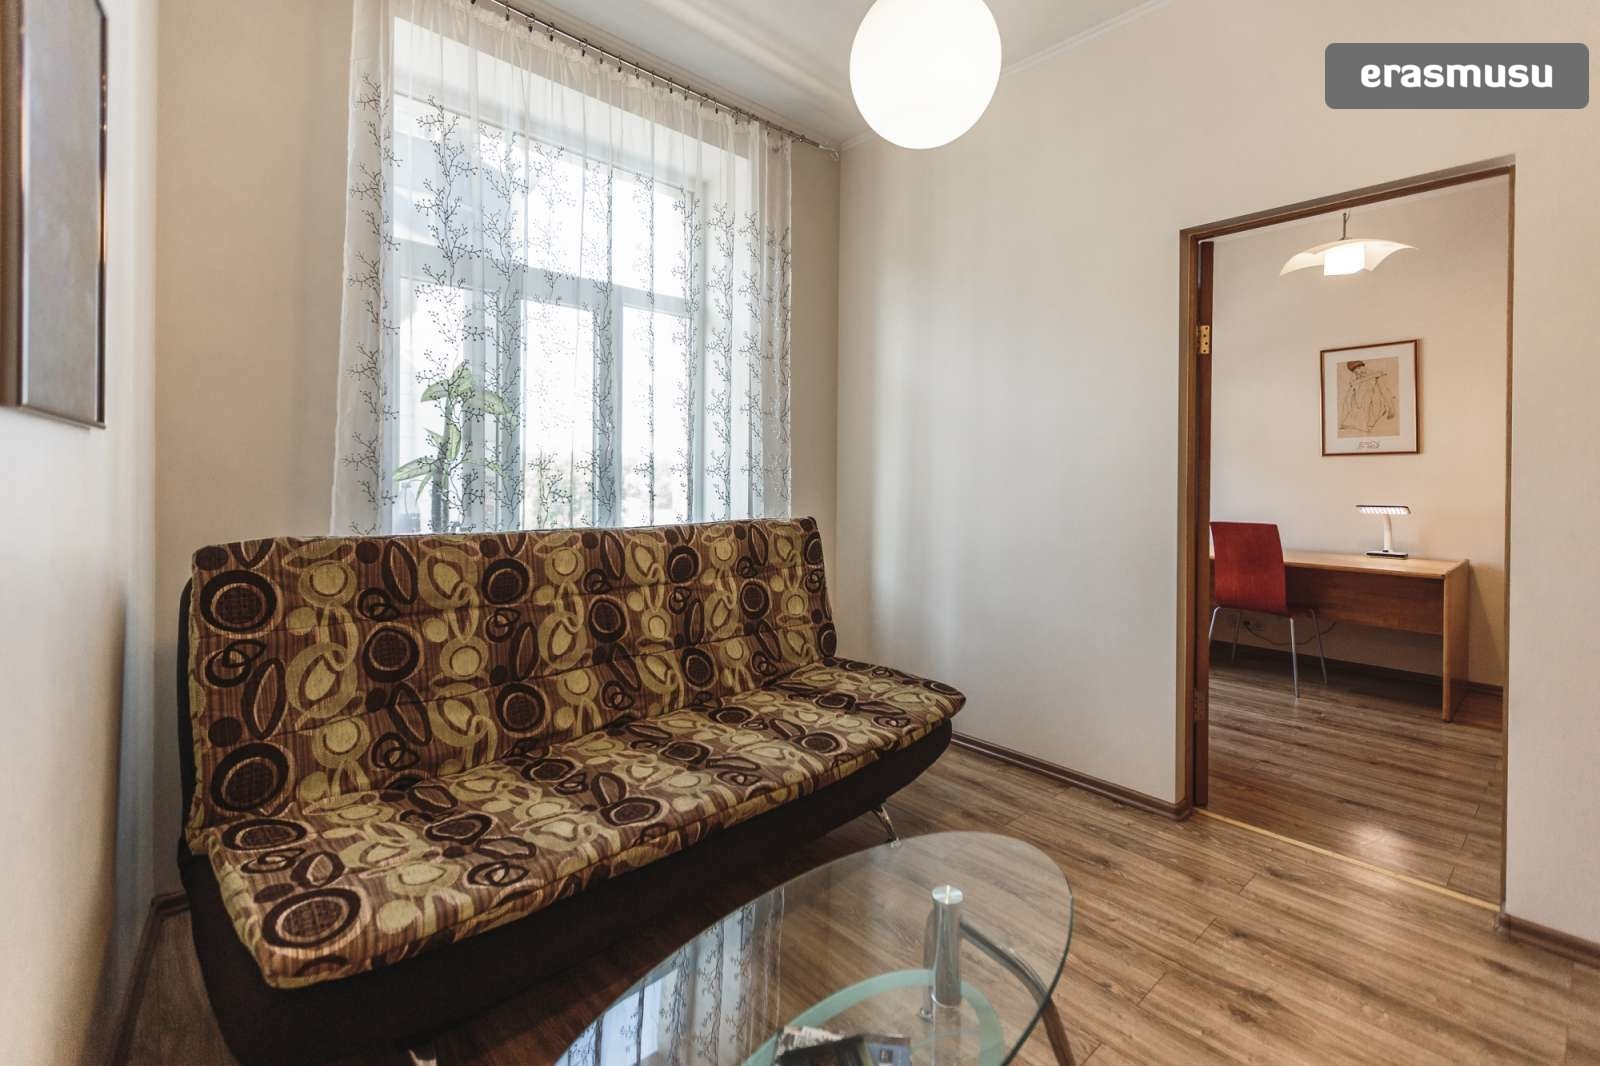 modern-2-bedroom-apartment-rent-grizinkalns-f176f5c37b240a8fdb87